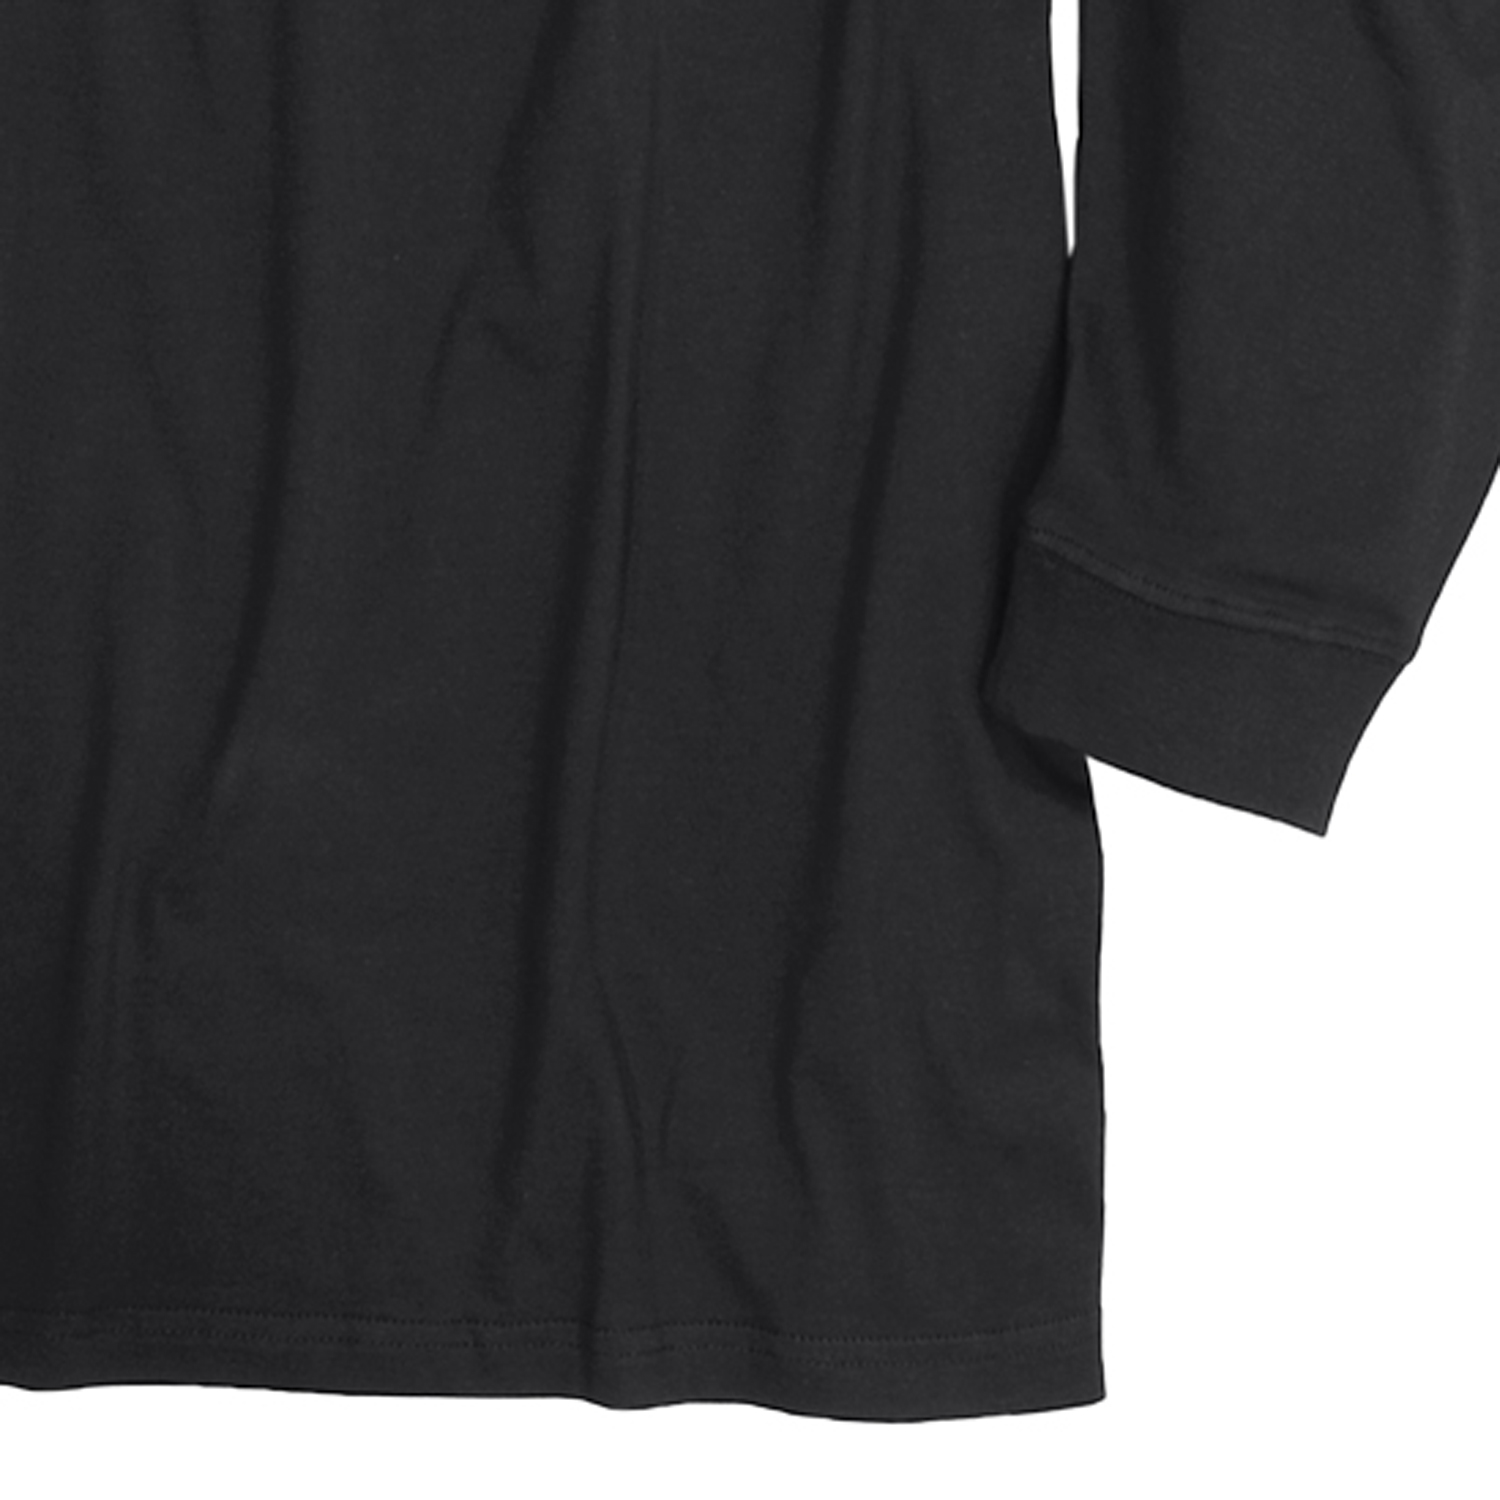 Detail Image to Black roll neck by Redfield in extra large sizes until 6XL